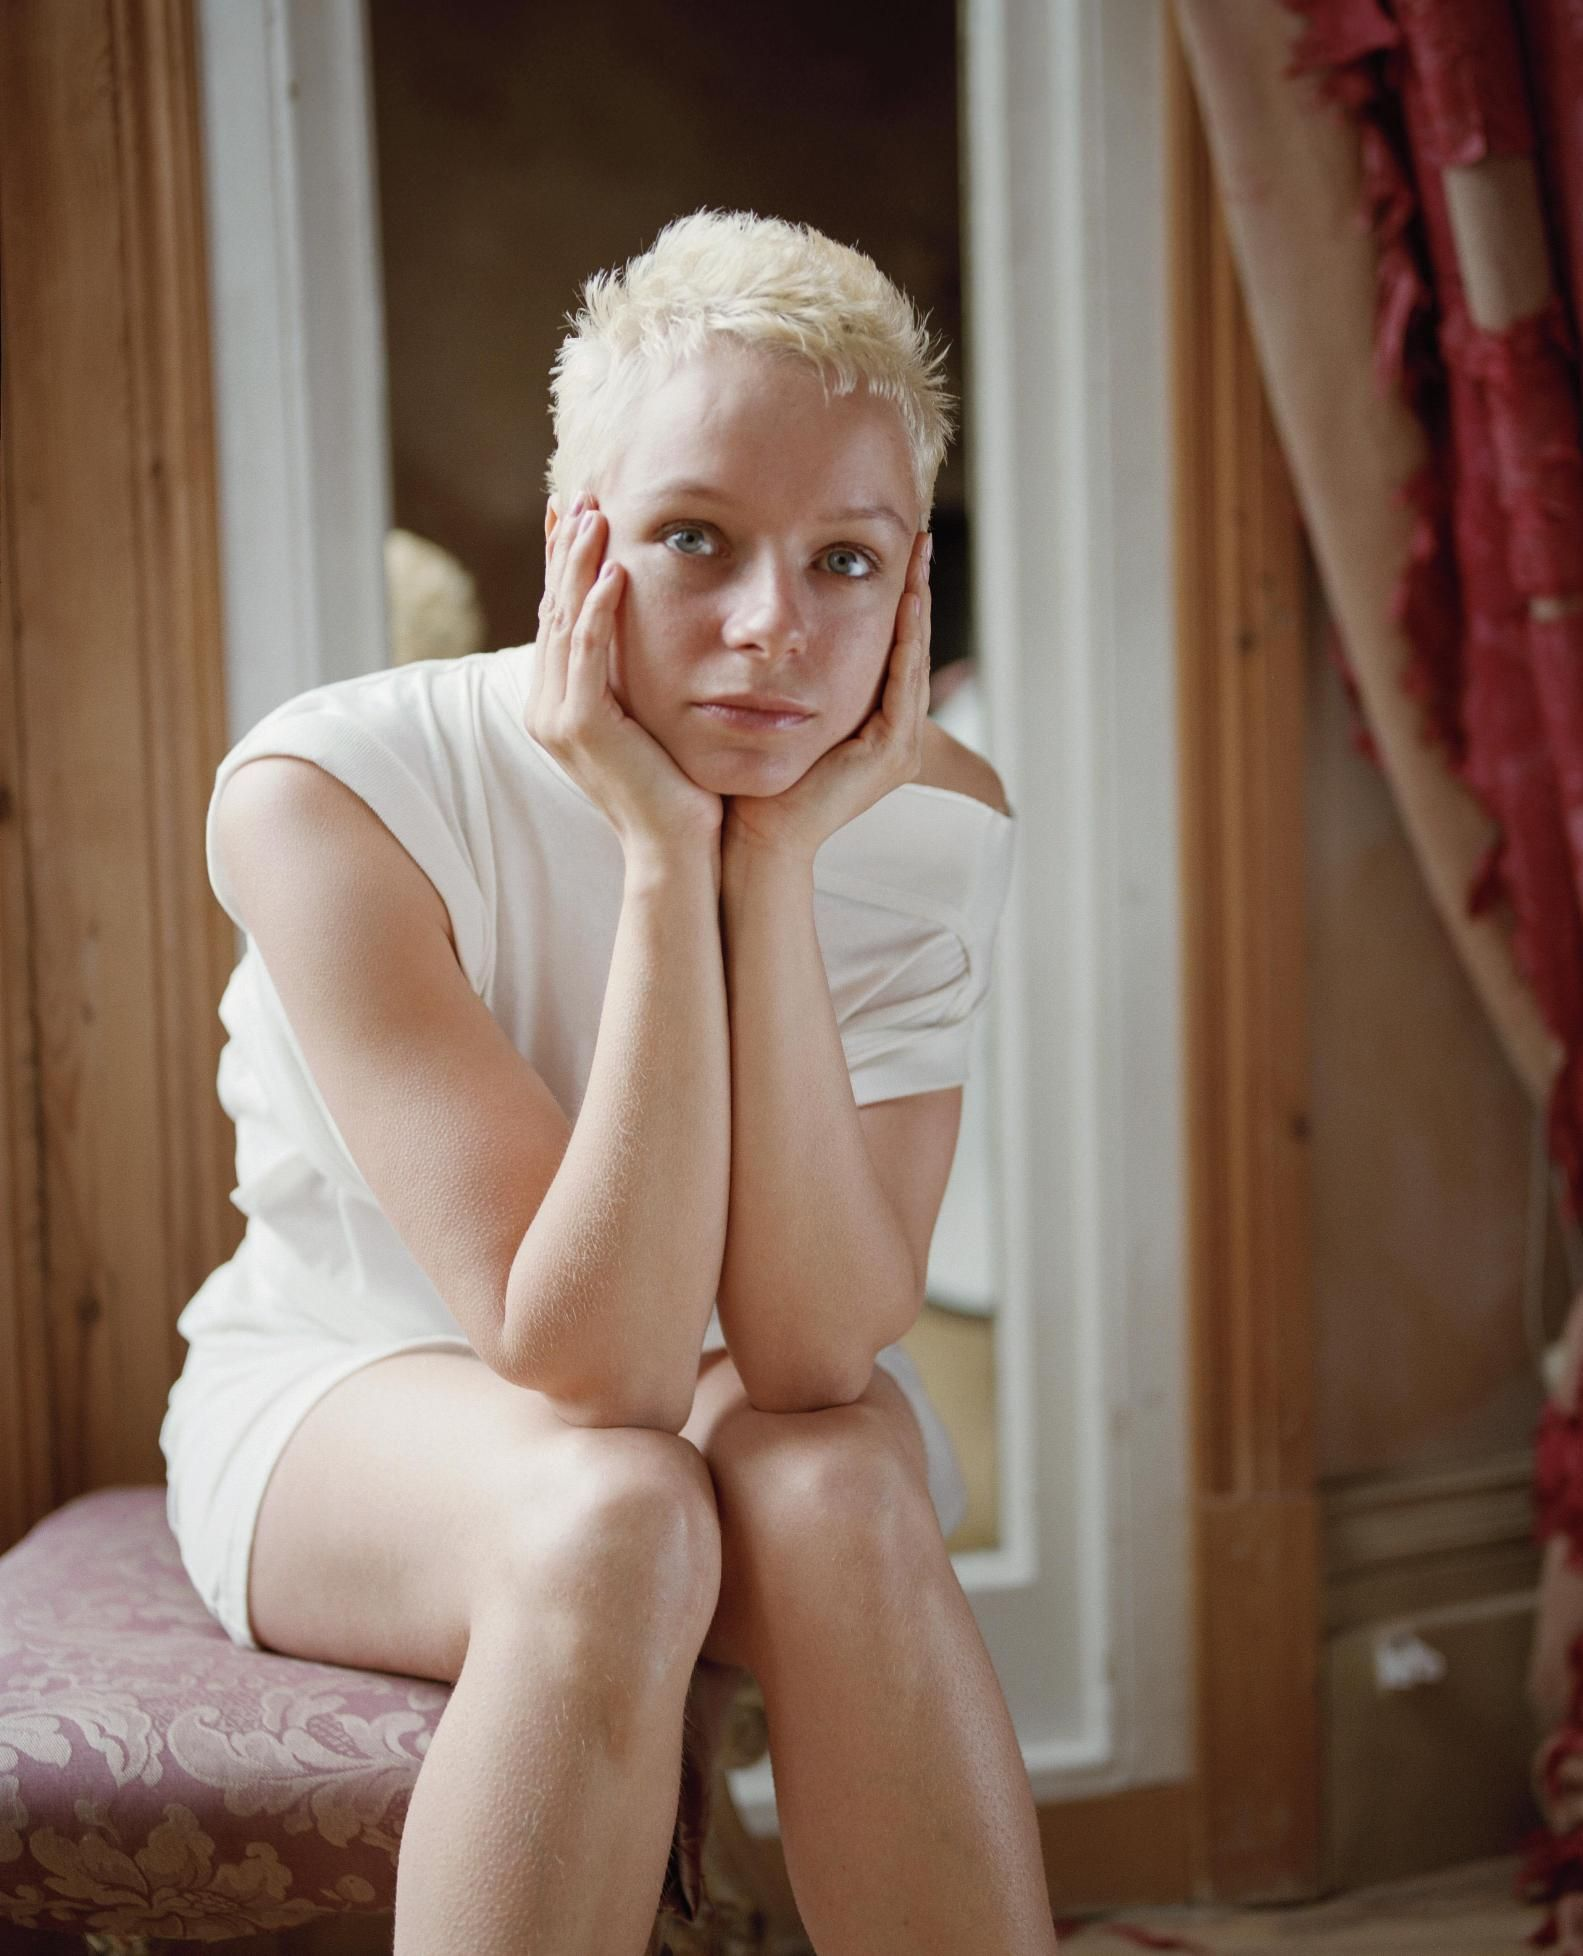 Samantha Morton (born 1977) Samantha Morton (born 1977) new images